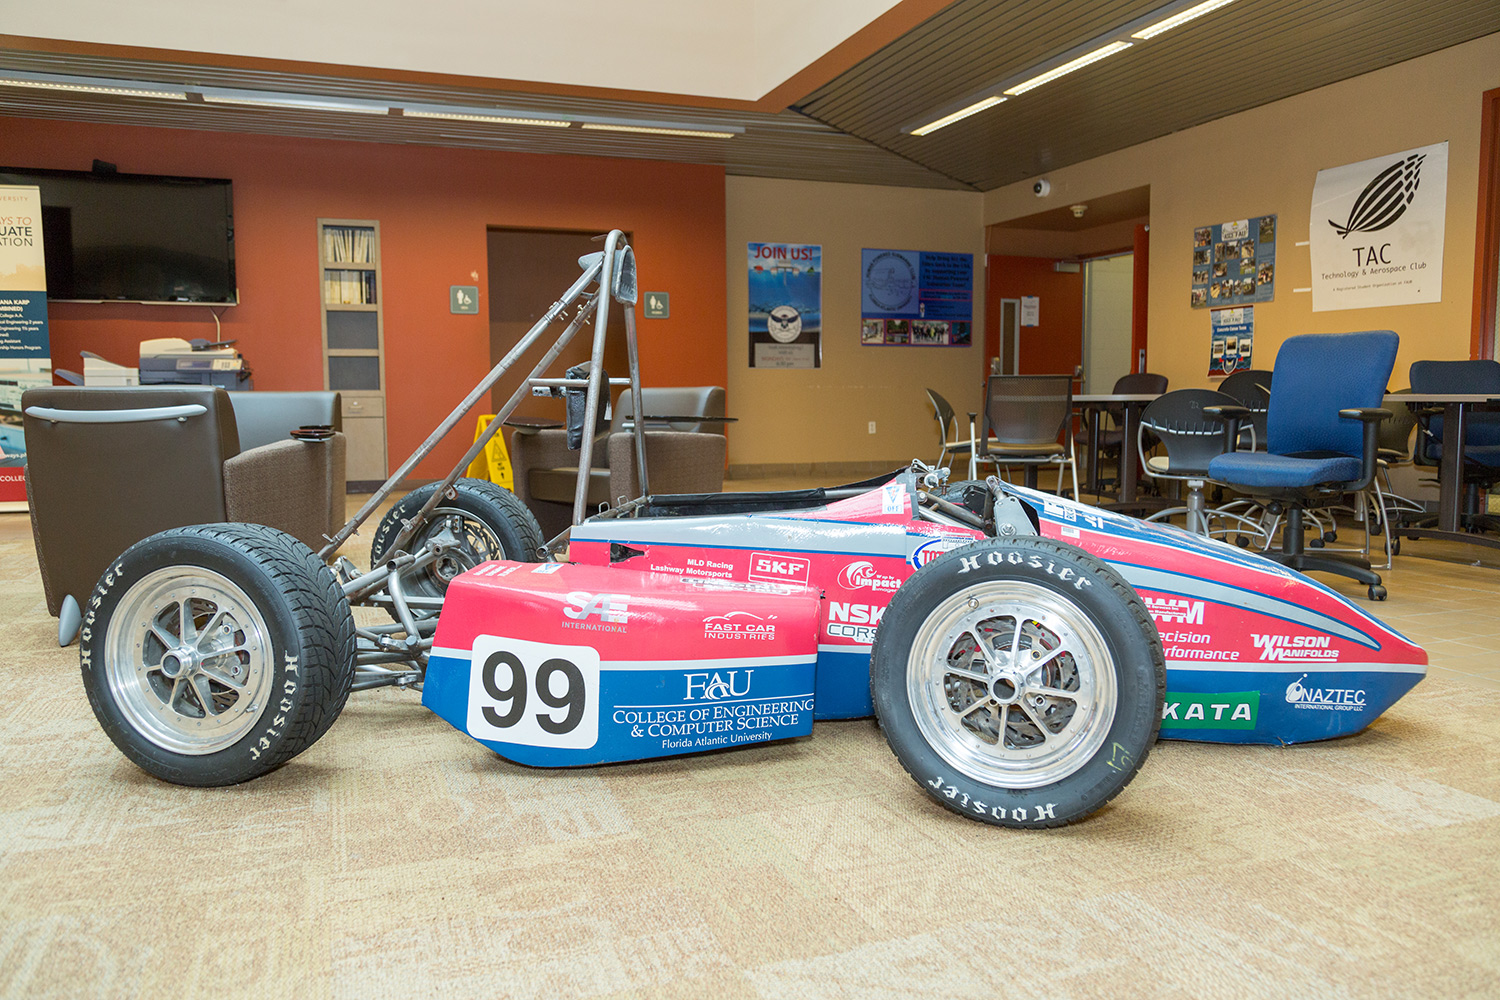 Owls Racing looks to build on tradition after recent success ...